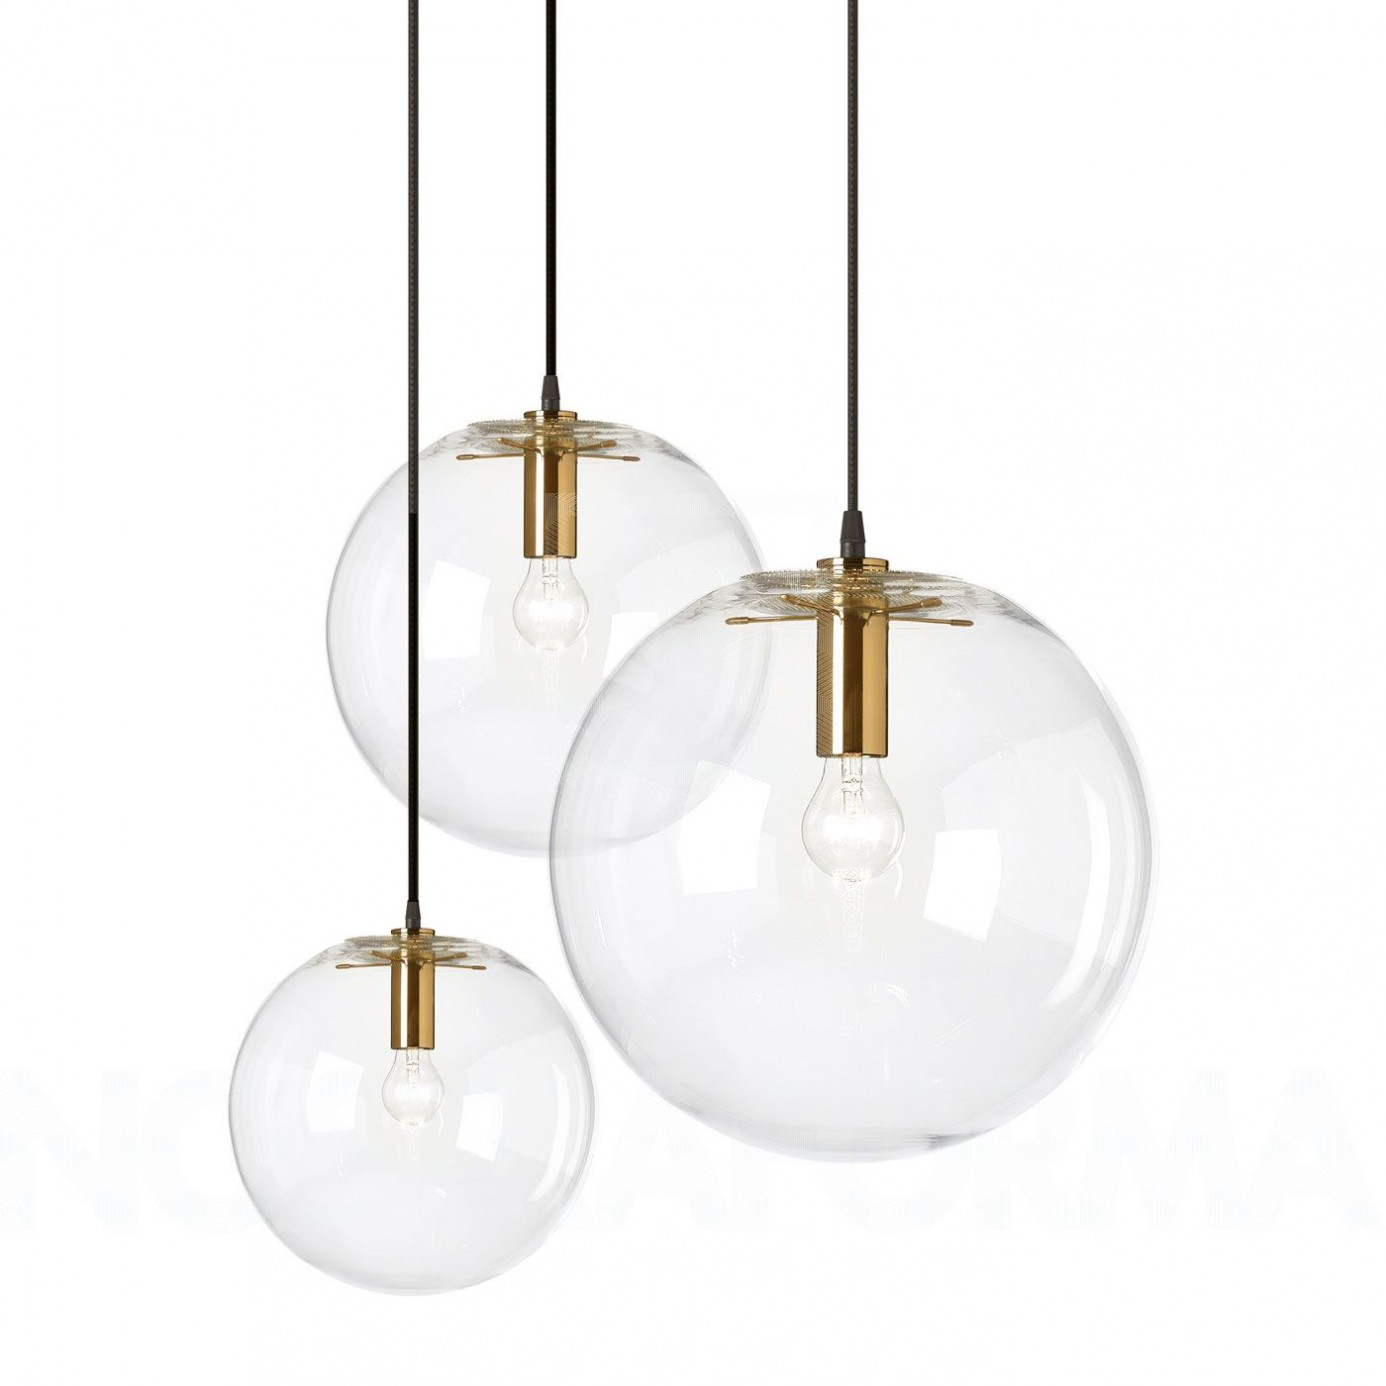 Lampe Glaskugel Classicon Selene Brass Pendant Lamp Modern And Contemporary